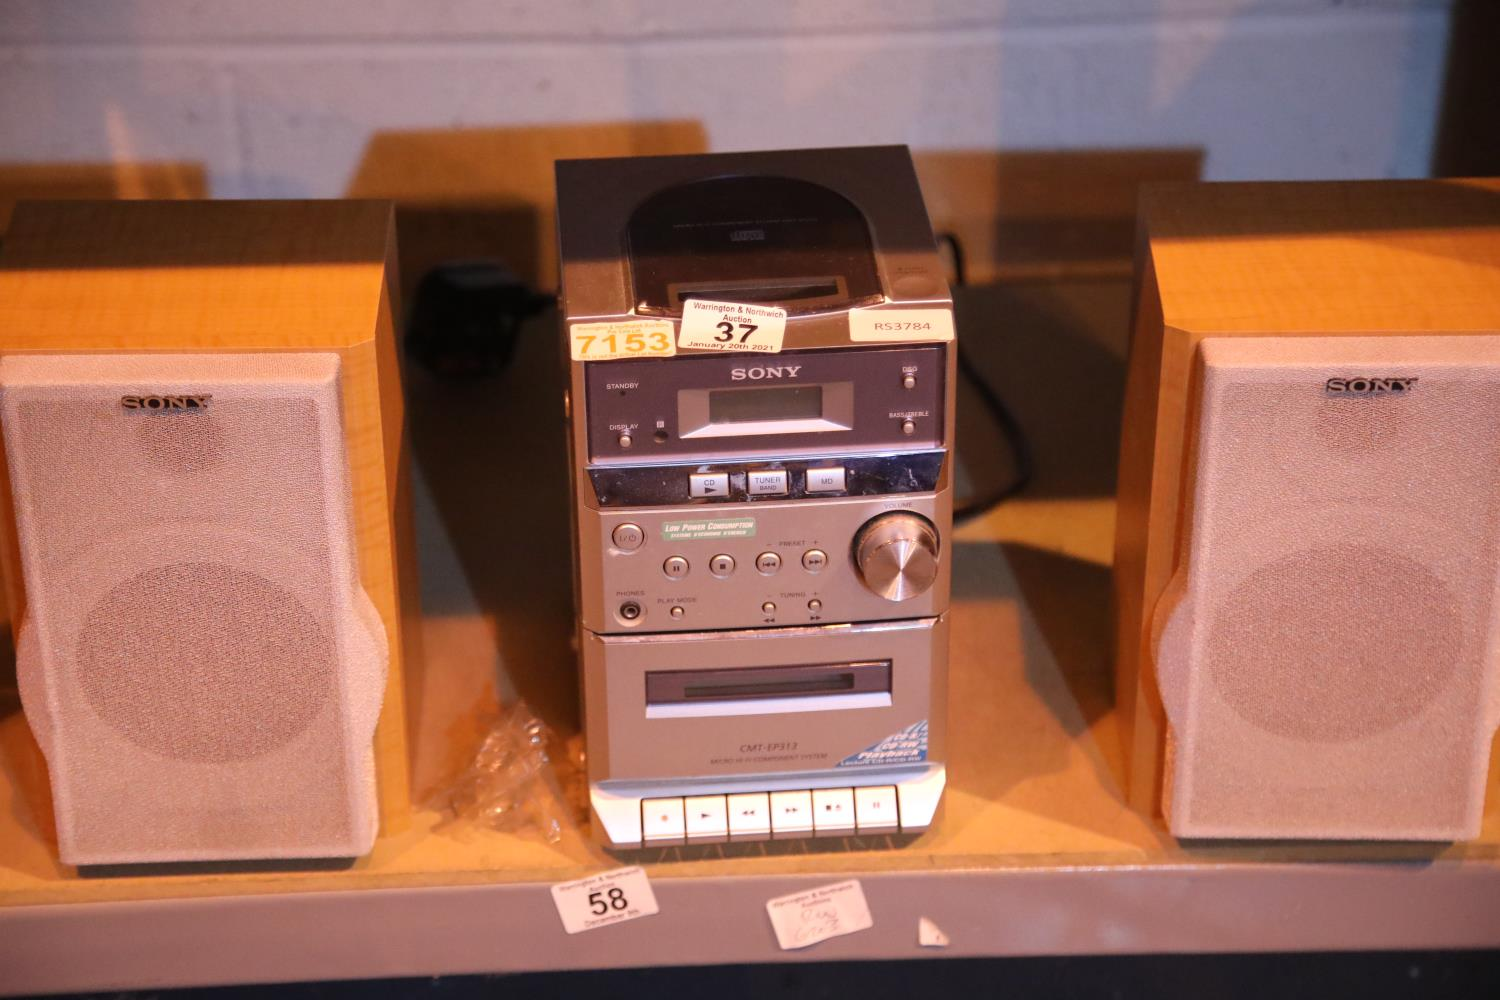 Sony CMT EP313 micro music system. Not available for in-house P&P, contact Paul O'Hea at Mailboxes